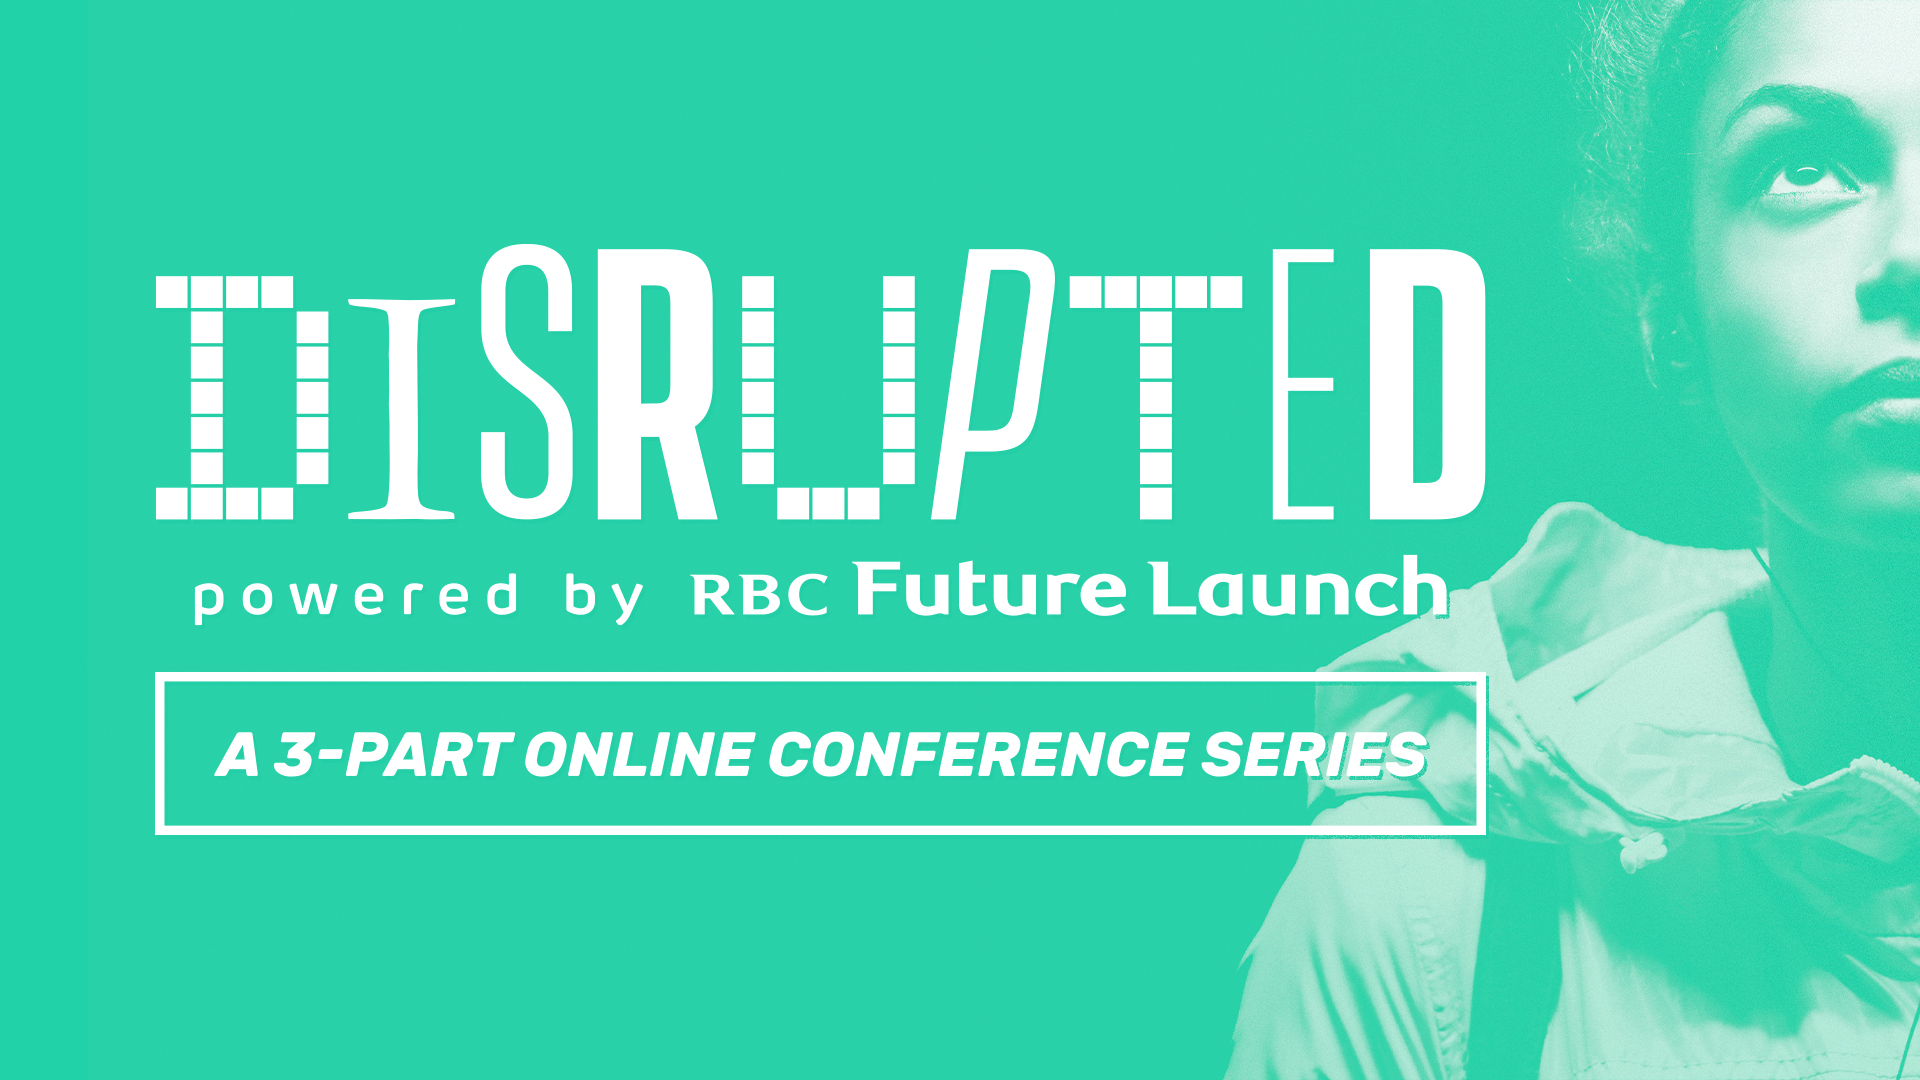 Teal background overlaying a photo of a woman on the right. Text in white reads: Disrupted. Powered by RBC Future Launch. A 3-part online conference series.